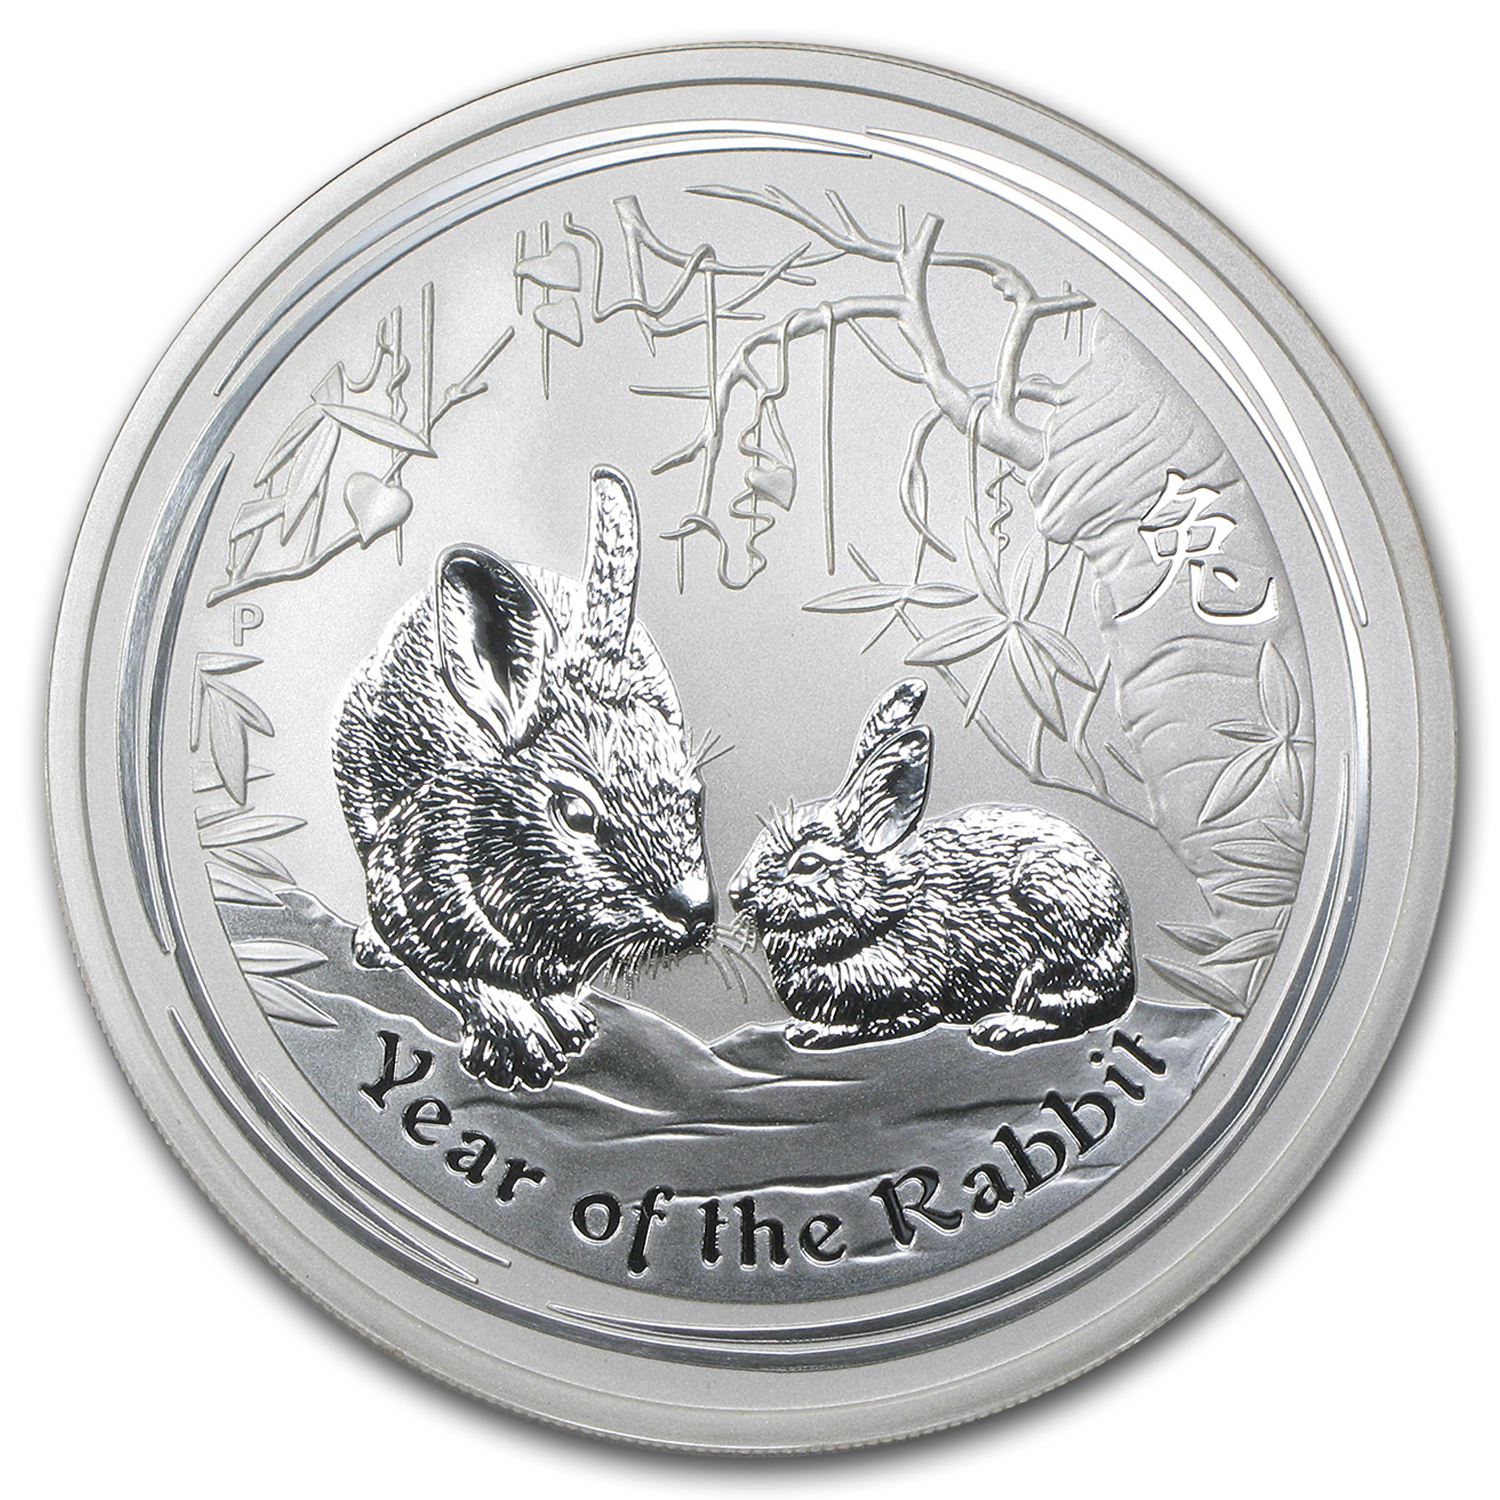 2011 5 oz Silver Australian Year of the Rabbit BU